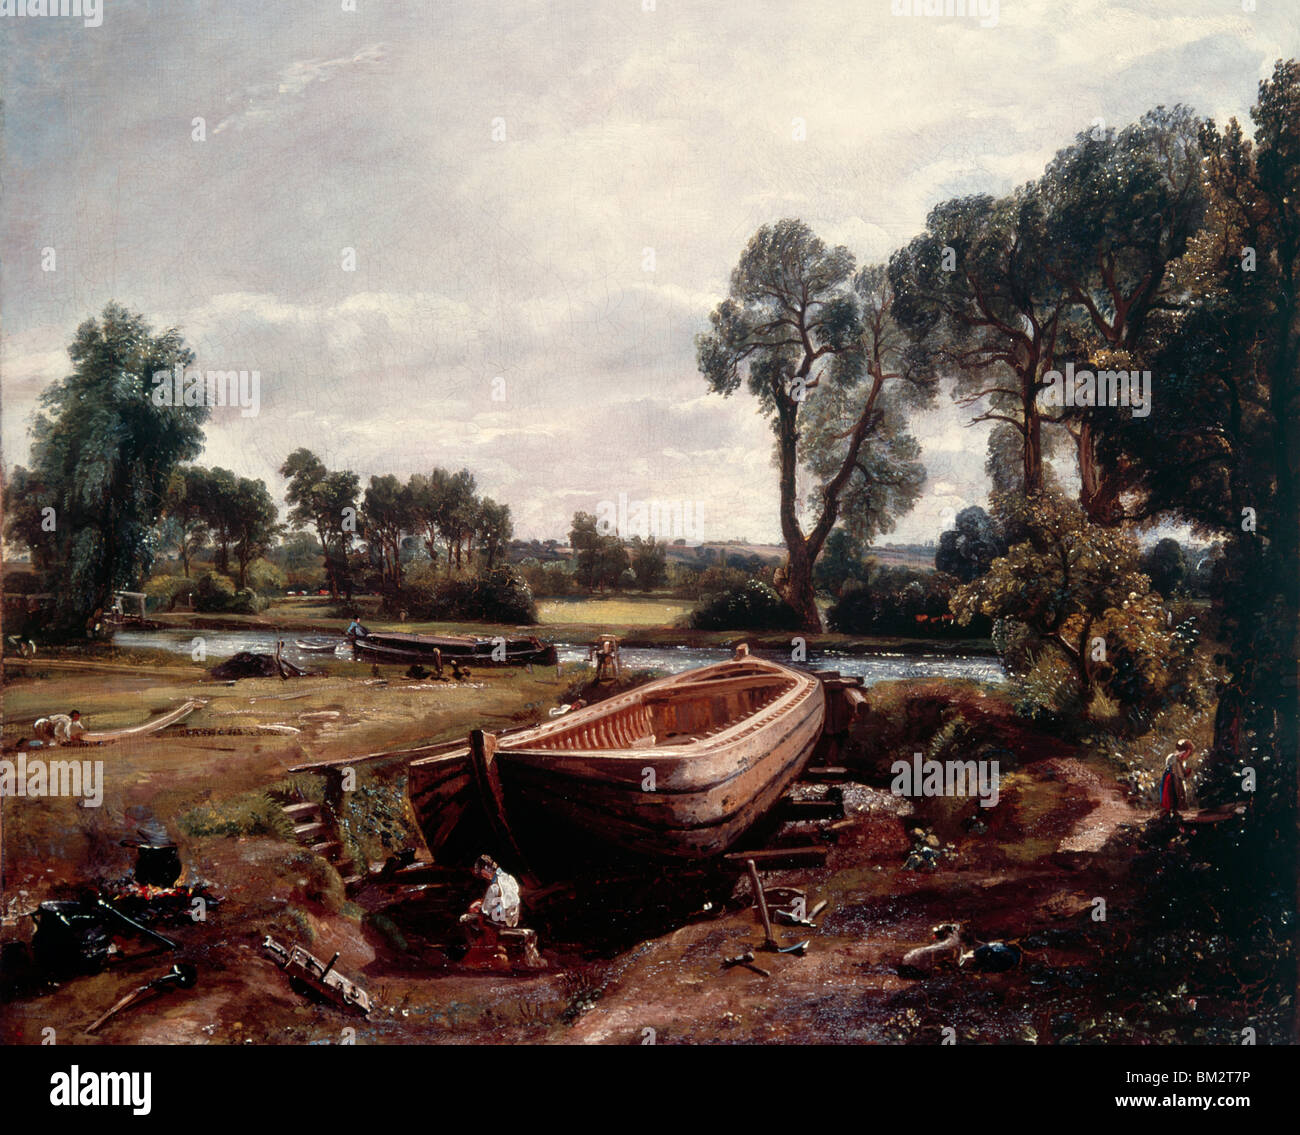 Boat Building near Flatford Mill by John Constable oil on canvas 1814 (1776-1837) UK England London Victoria & Albert Stock Photo